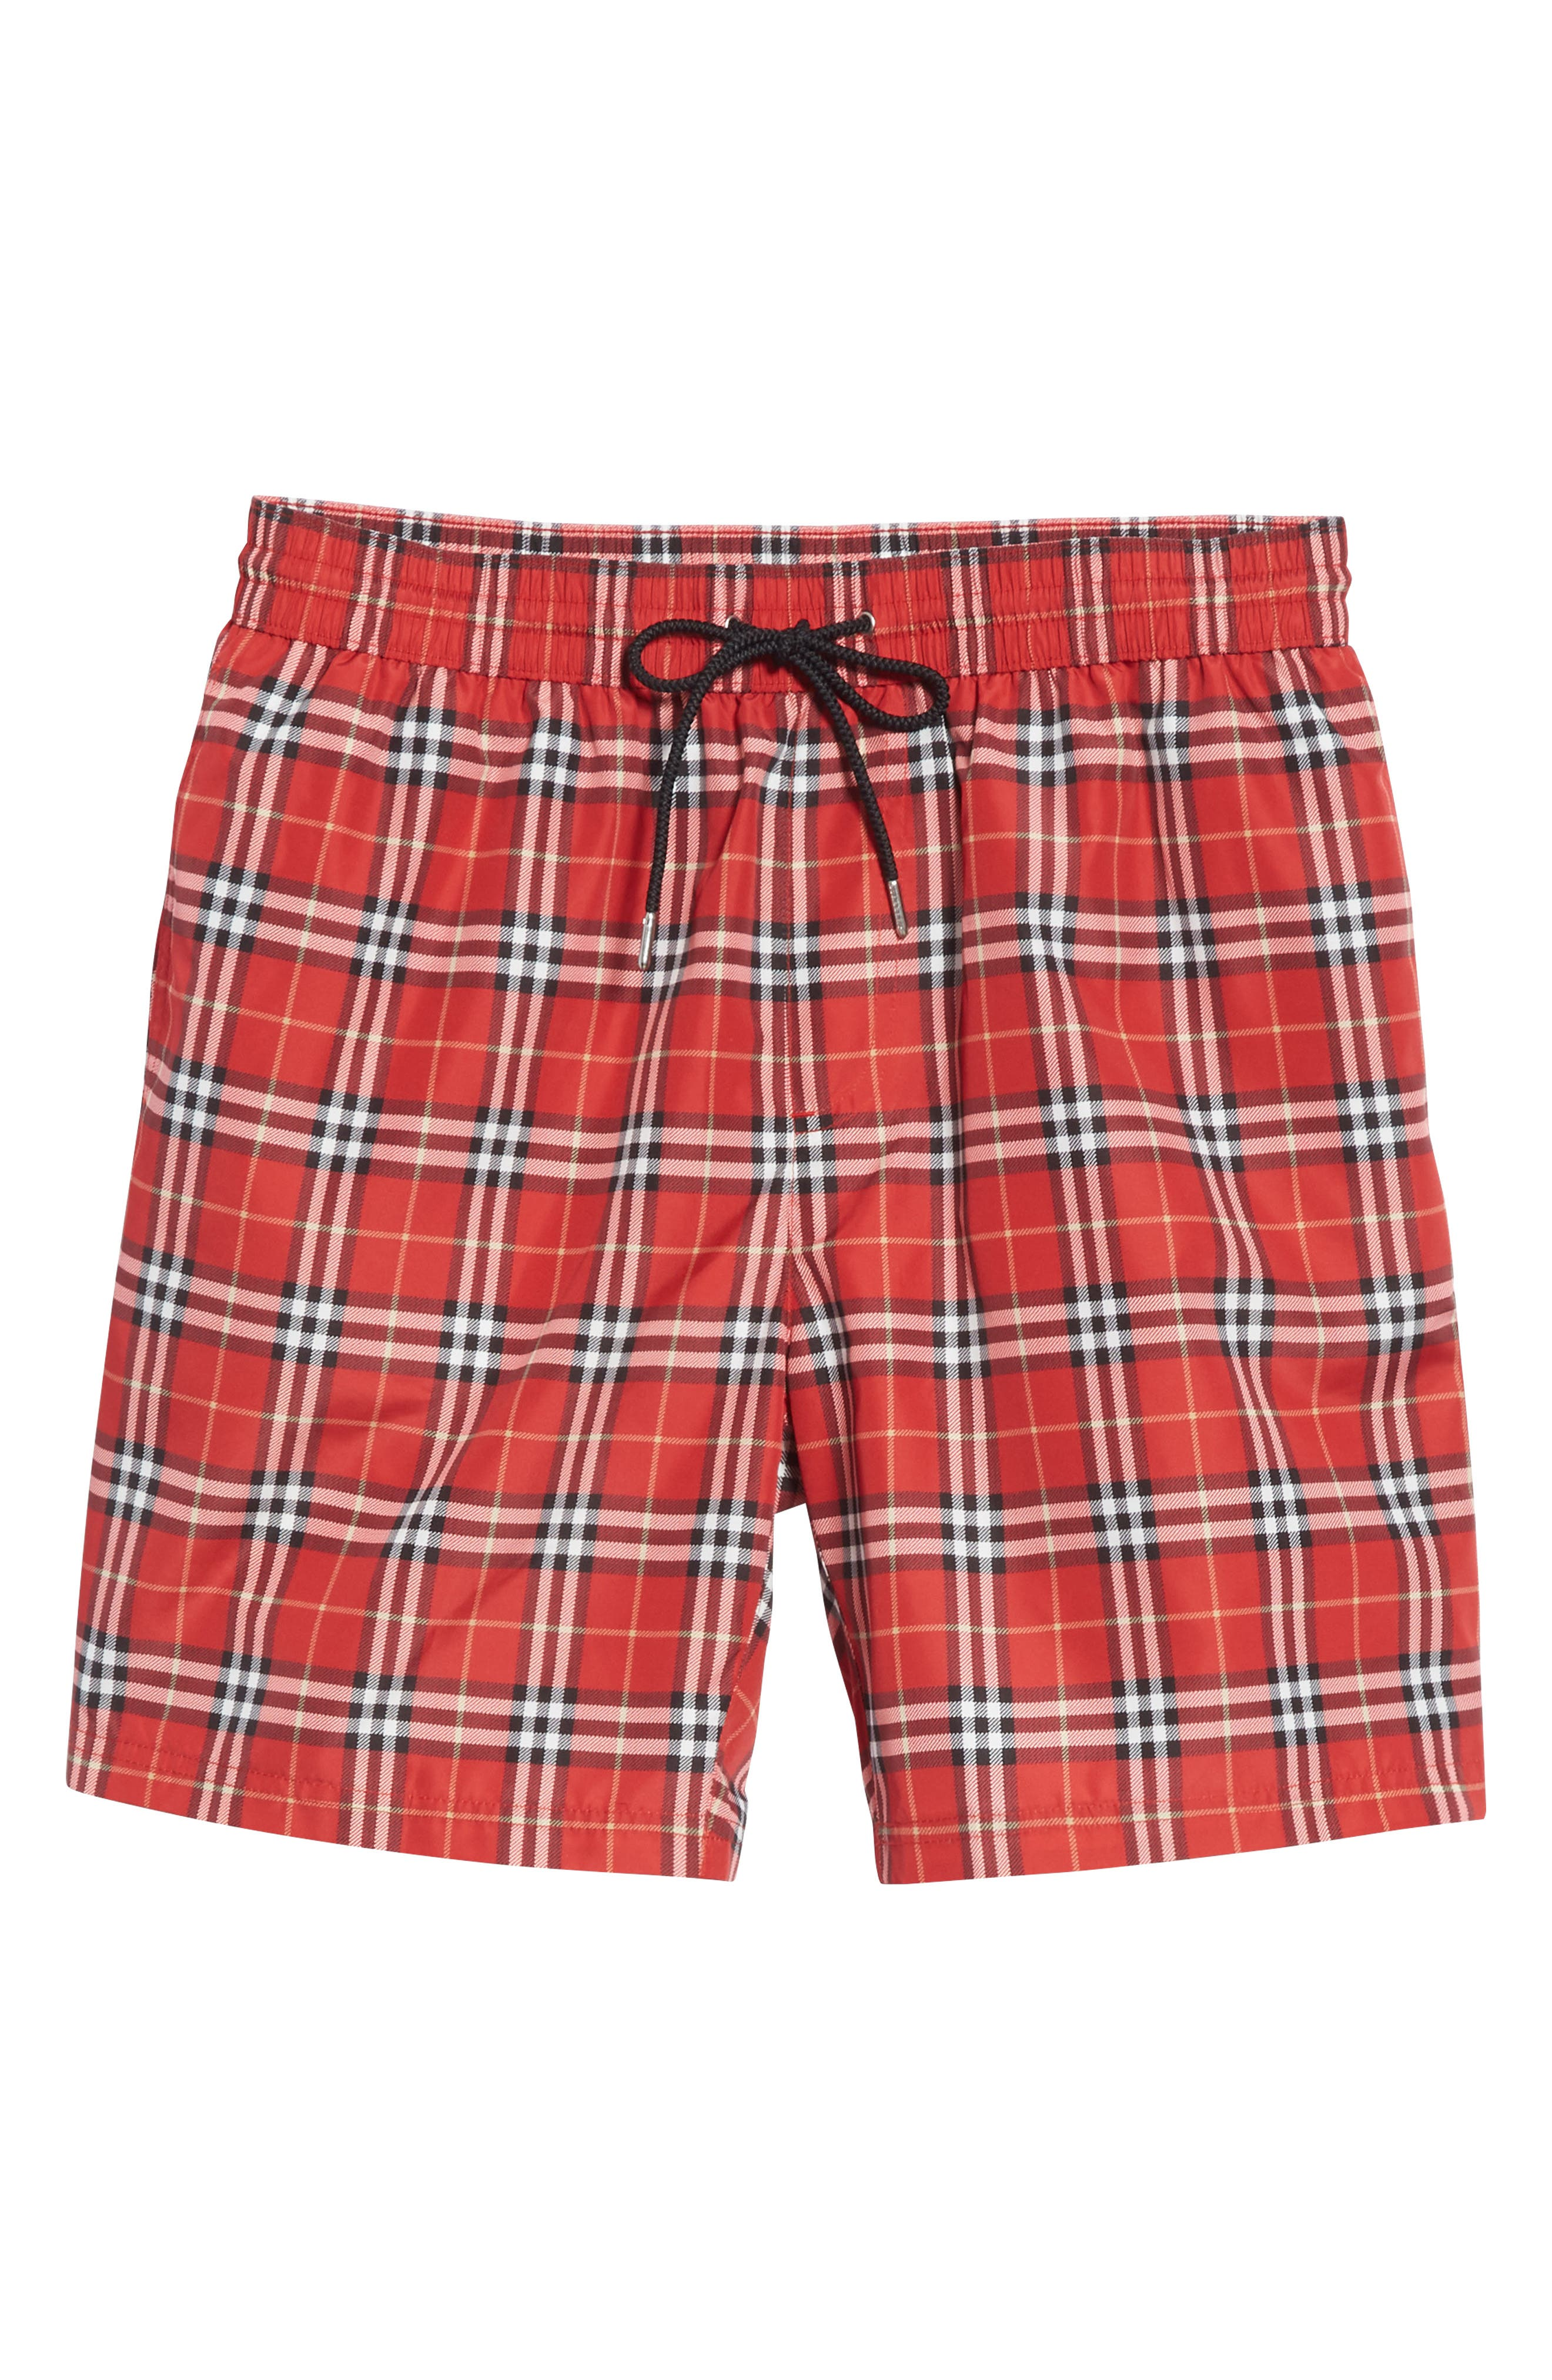 Guides New Check Swim Trunks,                             Alternate thumbnail 6, color,                             Parade Red